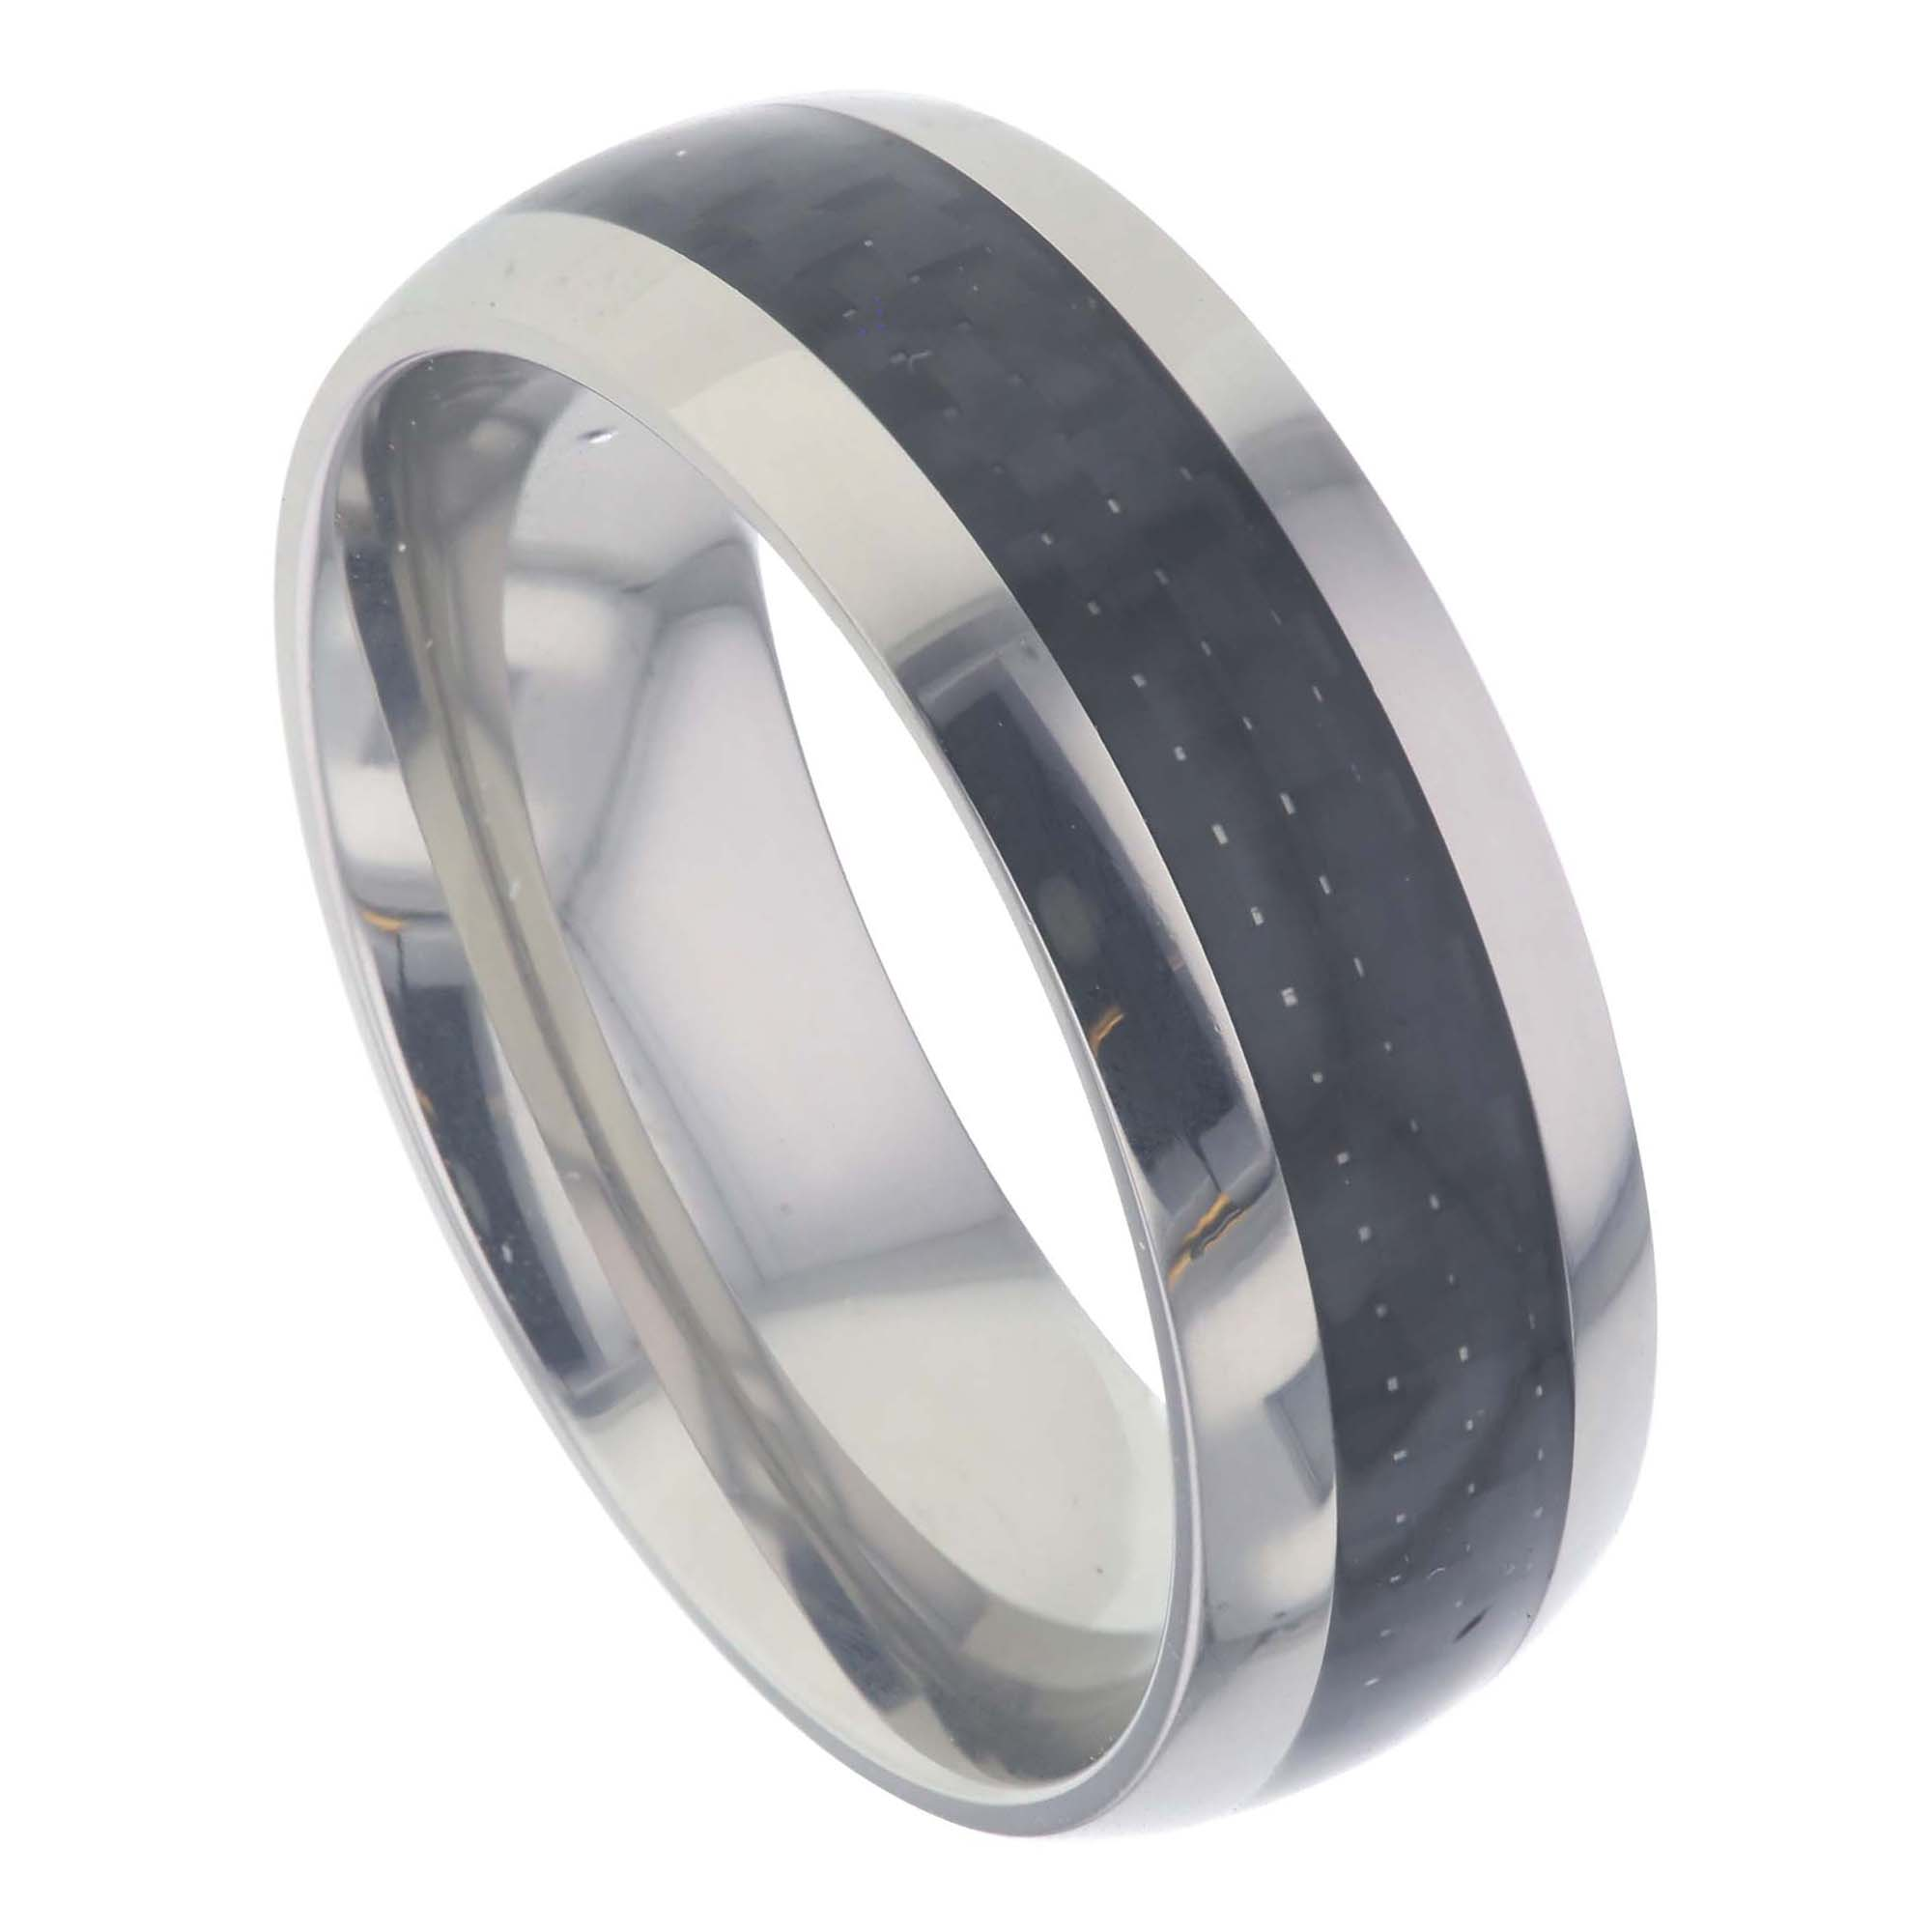 ring mens key steel greek jewelry bling got stainless swk bands hyp band men